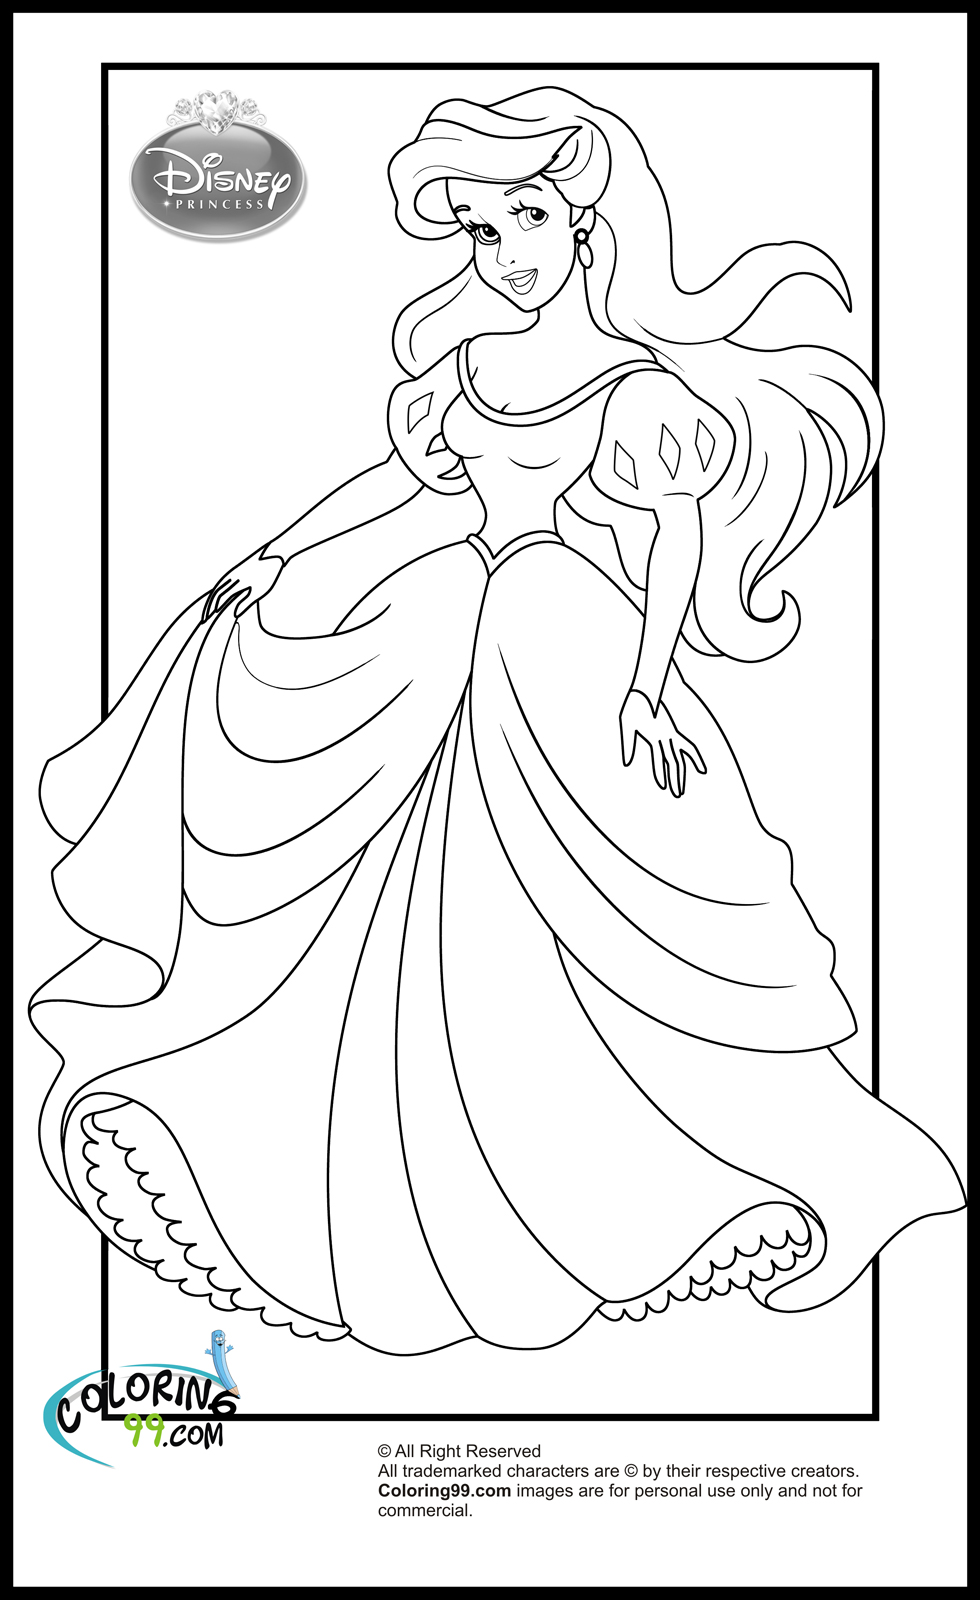 Princess Coloring Pages Spot : Disney princess coloring pages